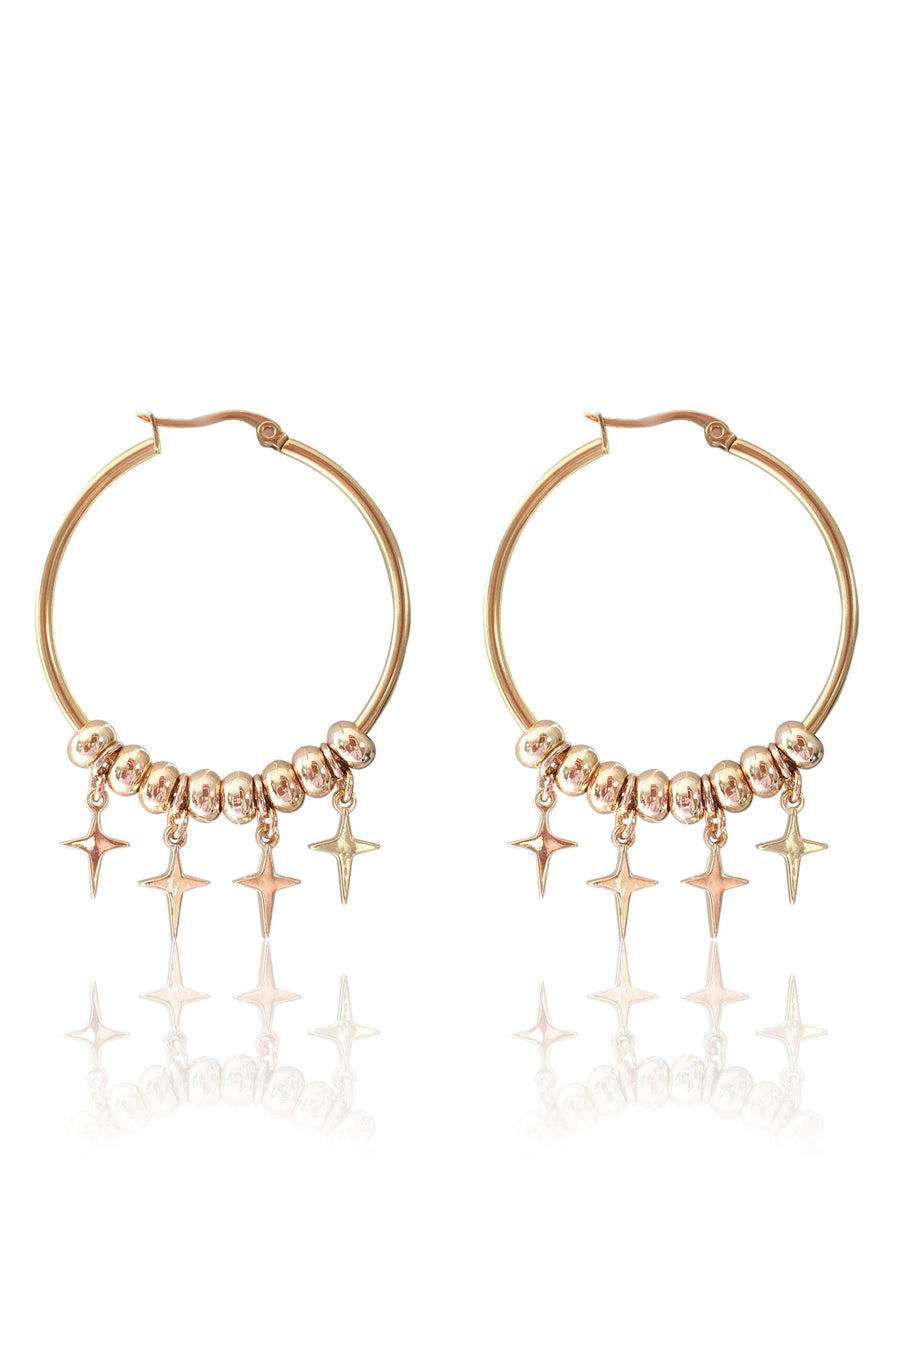 Jasmine - Large Hoop Earrings - HER Empire Fashion Boutique Terrigal & Online